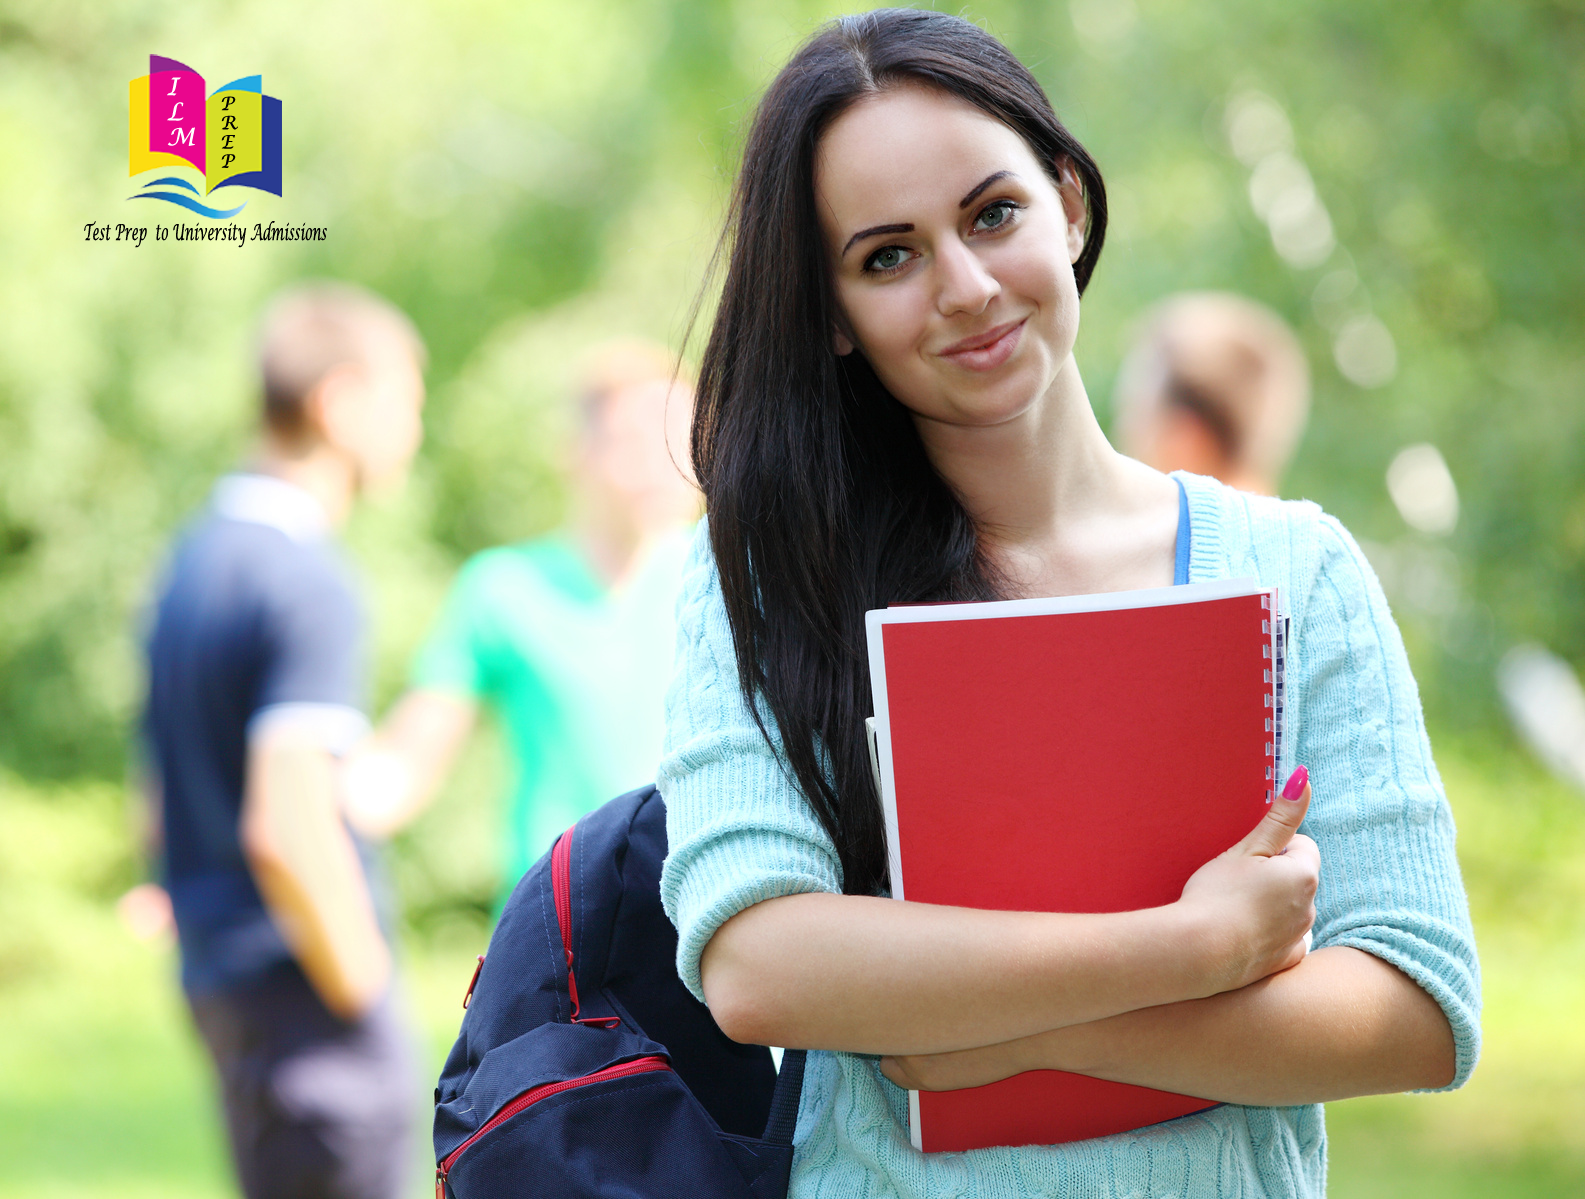 For the practice, student need to join GRE coaching classes through which student get expert guidance which include GRE prep courses, short tricks, techniques , etc to solve the paper within given time spare. Coaching classes have 10 weeks time duration.  Read more : https://goo.gl/MTI2HI